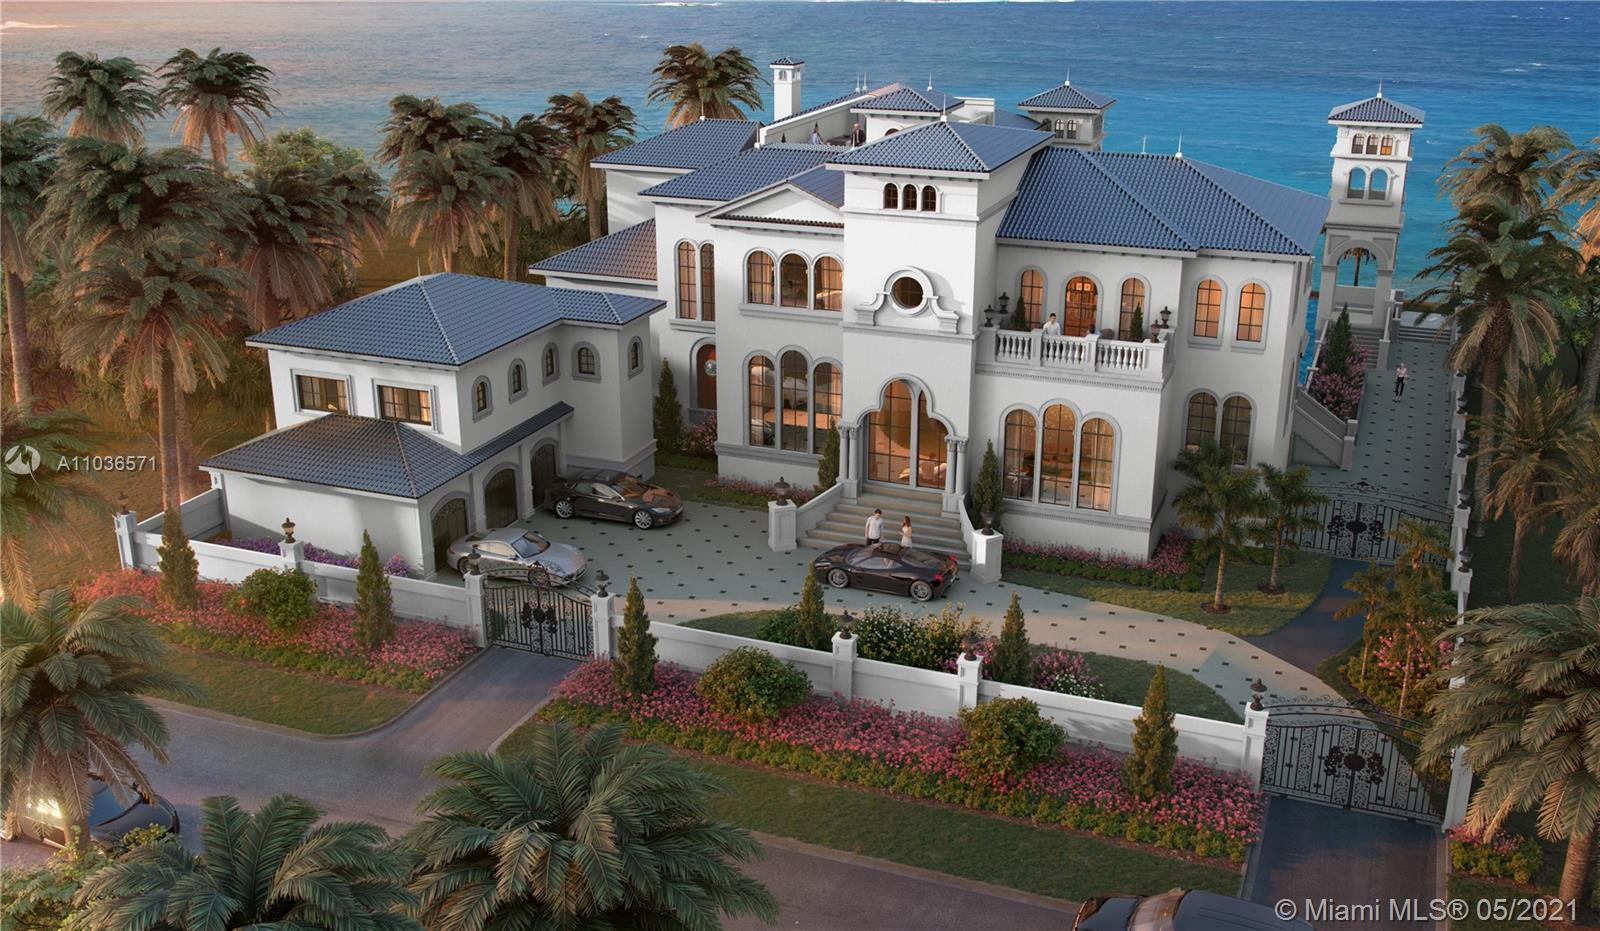 Designed by award-winning designer and builder Andrea D'Alessio. This 11,000± sq. ft. mansion with 1